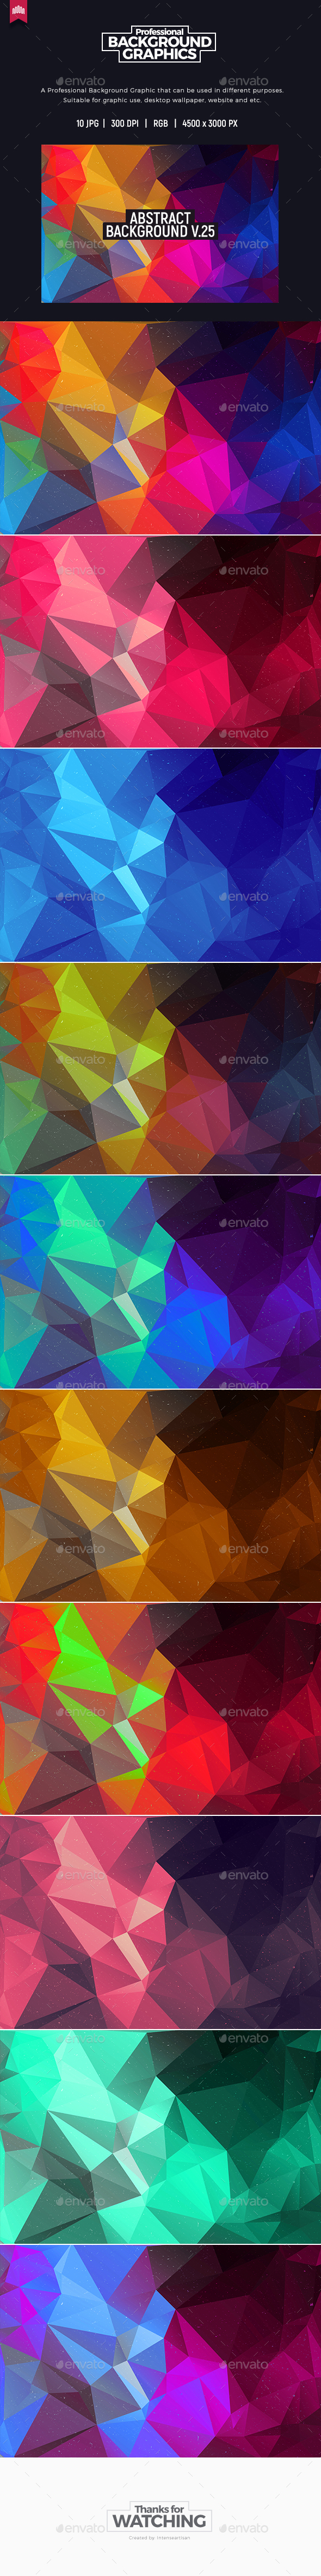 Abstract Polygon V.25 - Abstract Backgrounds